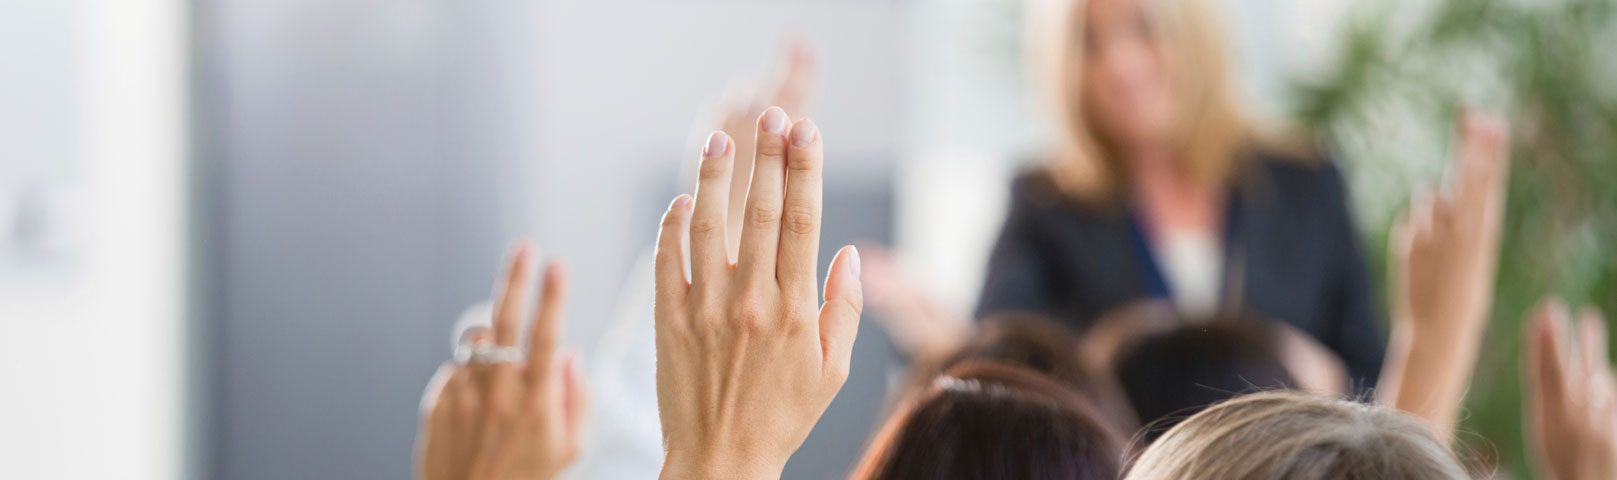 Woman in an audience with her hand raised to ask a question